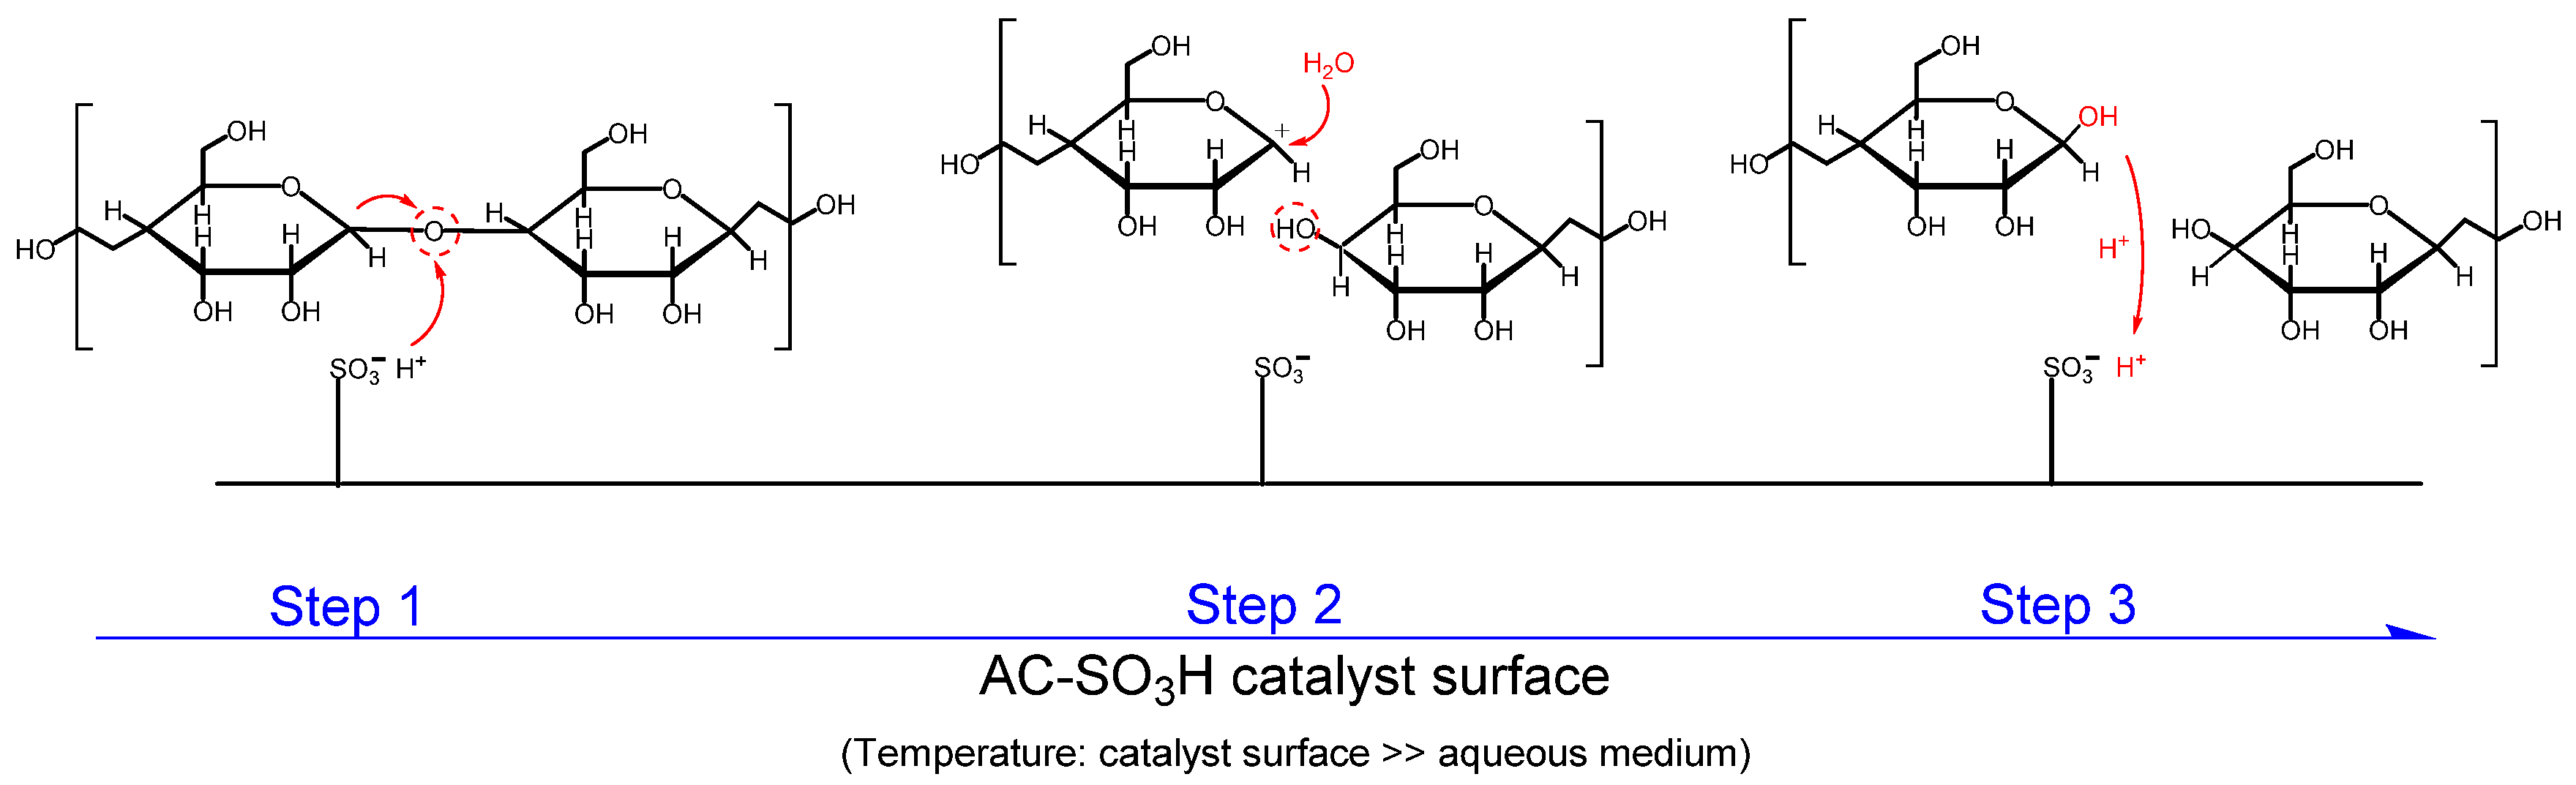 Catalysts | Free Full-Text | Is Selective Heating of the